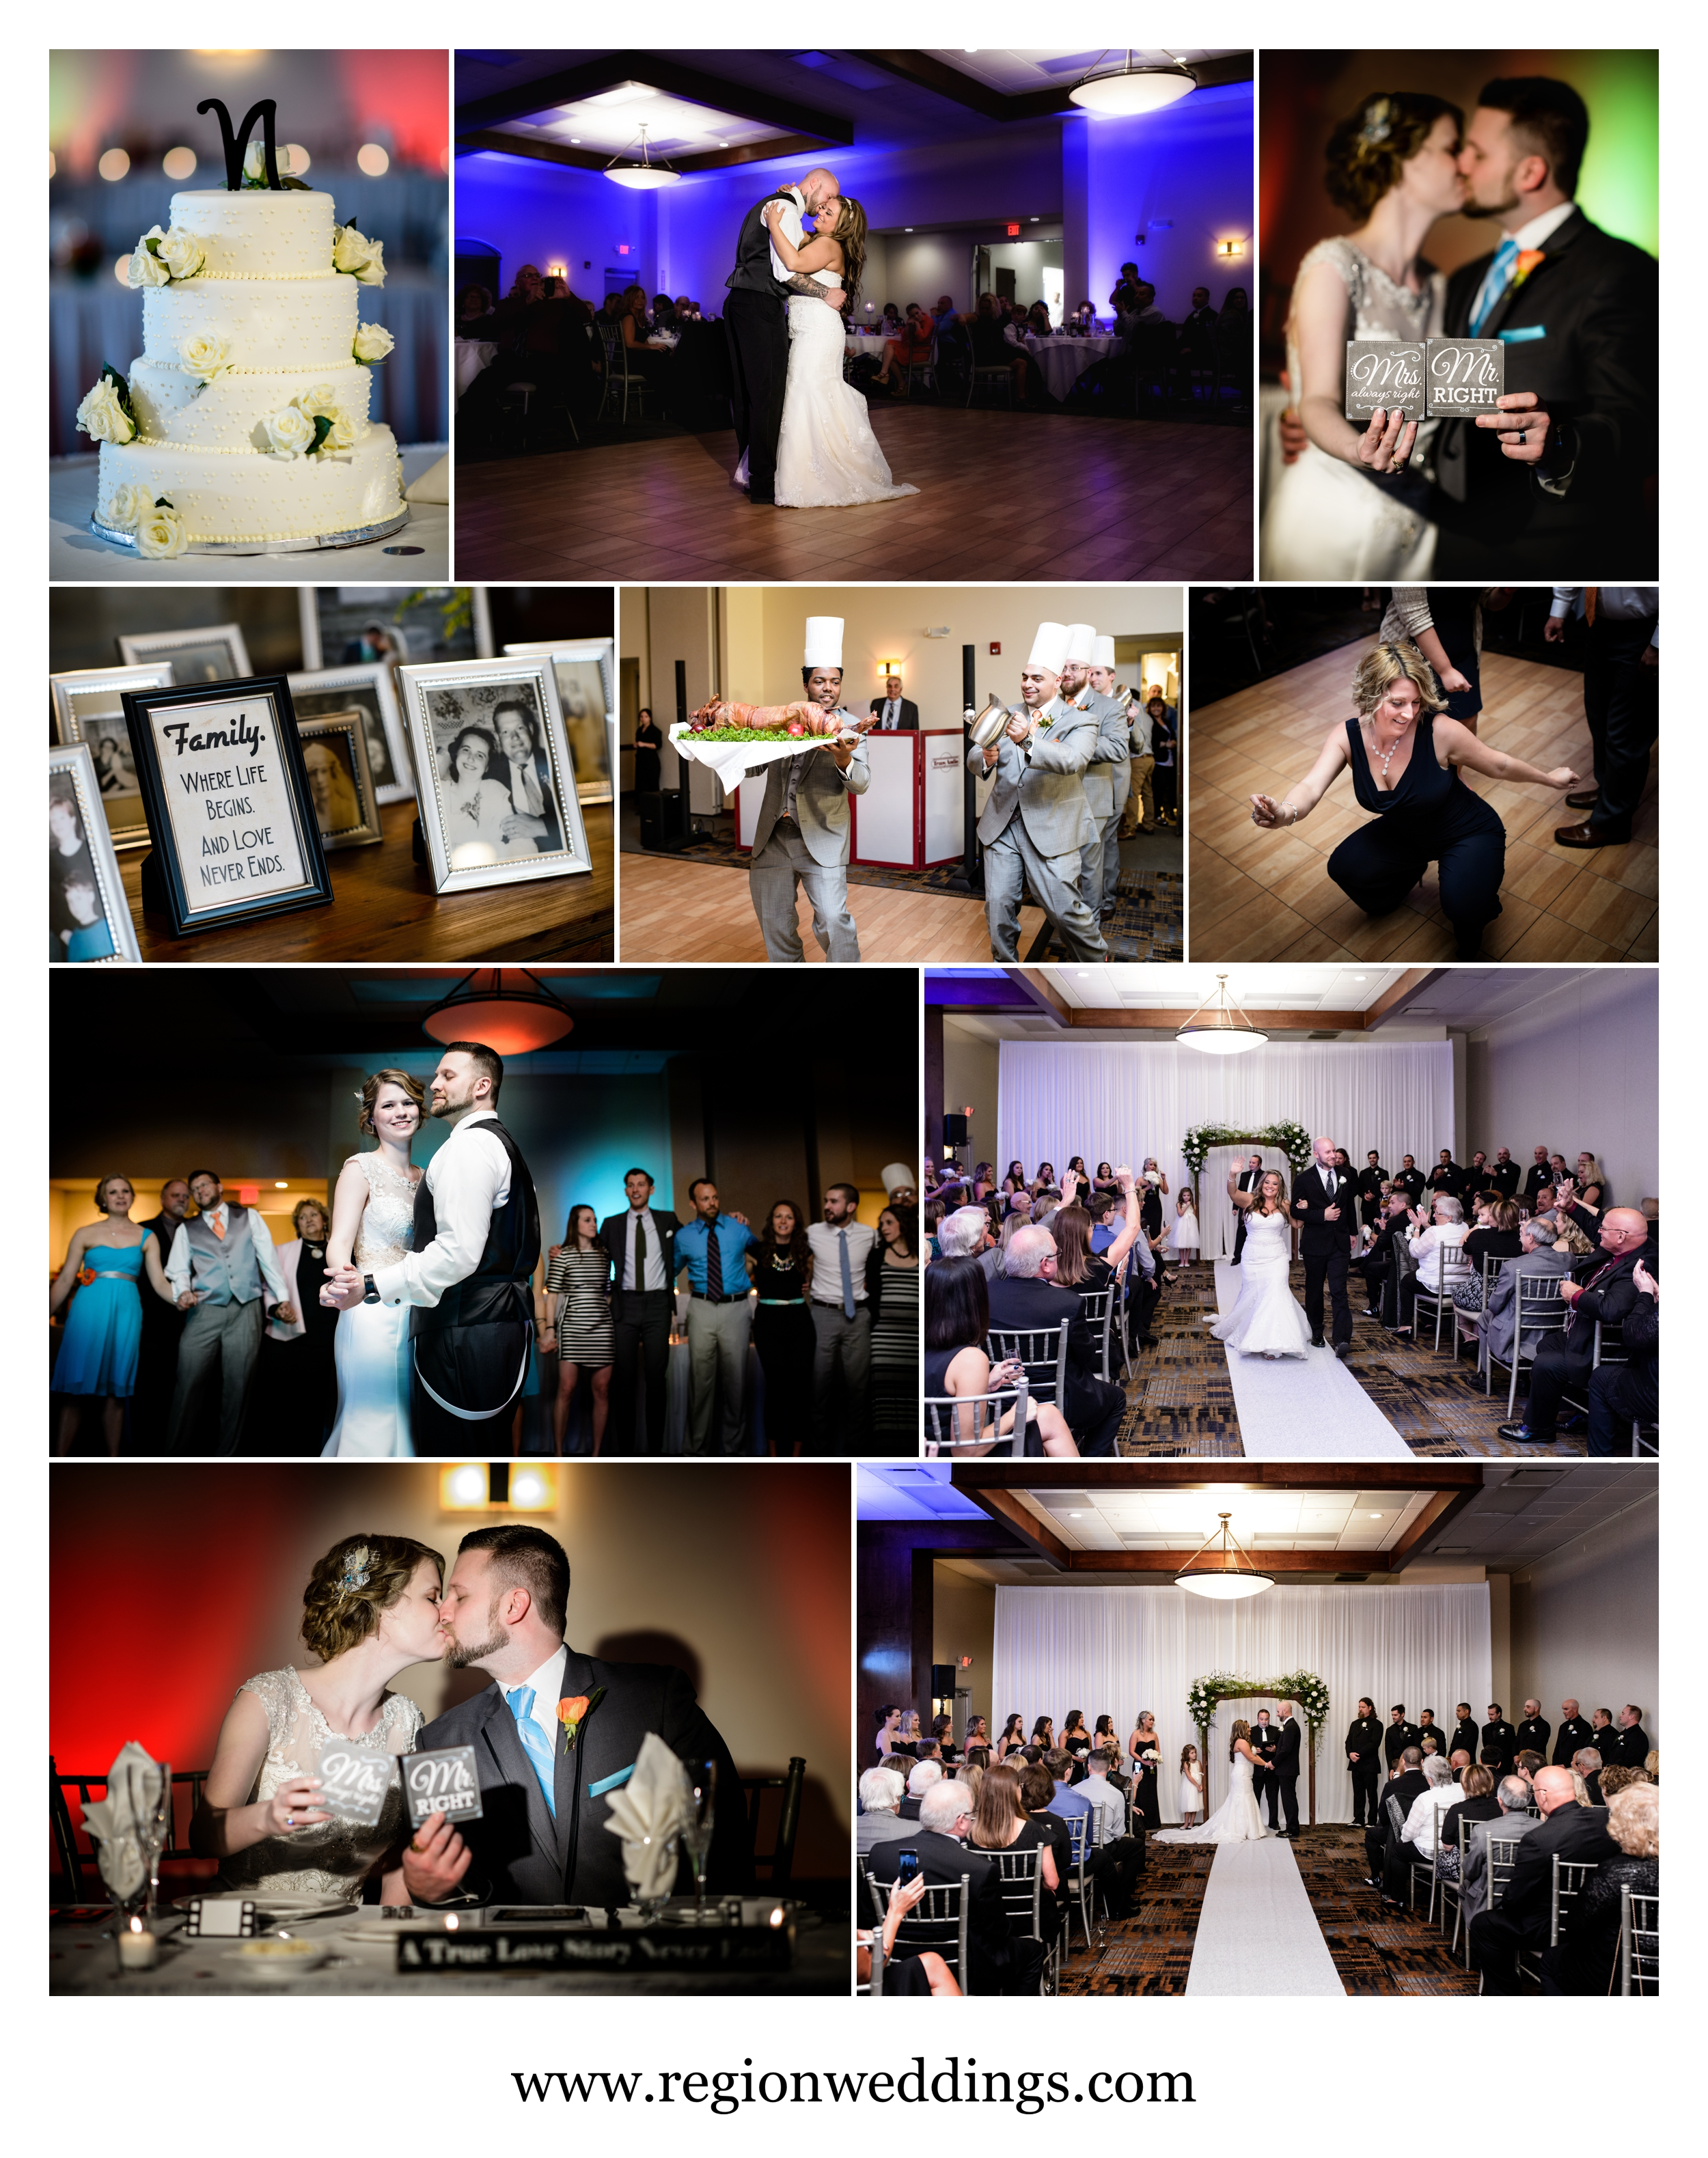 Wedding photos from Signature Banquets in Lowell, Indiana.